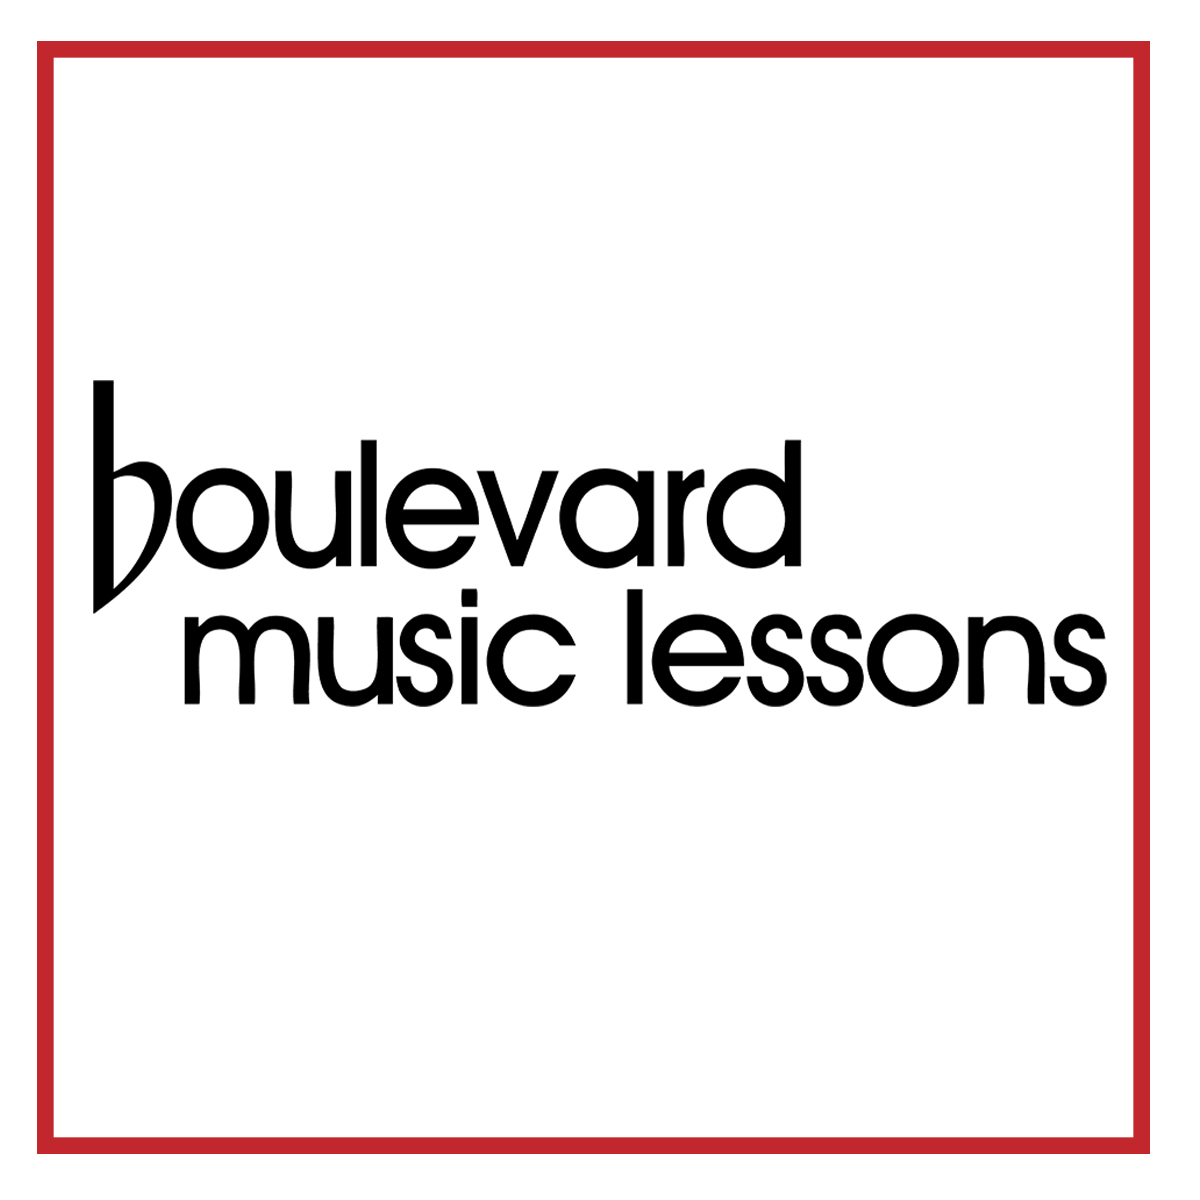 Boulevard Music Lessons